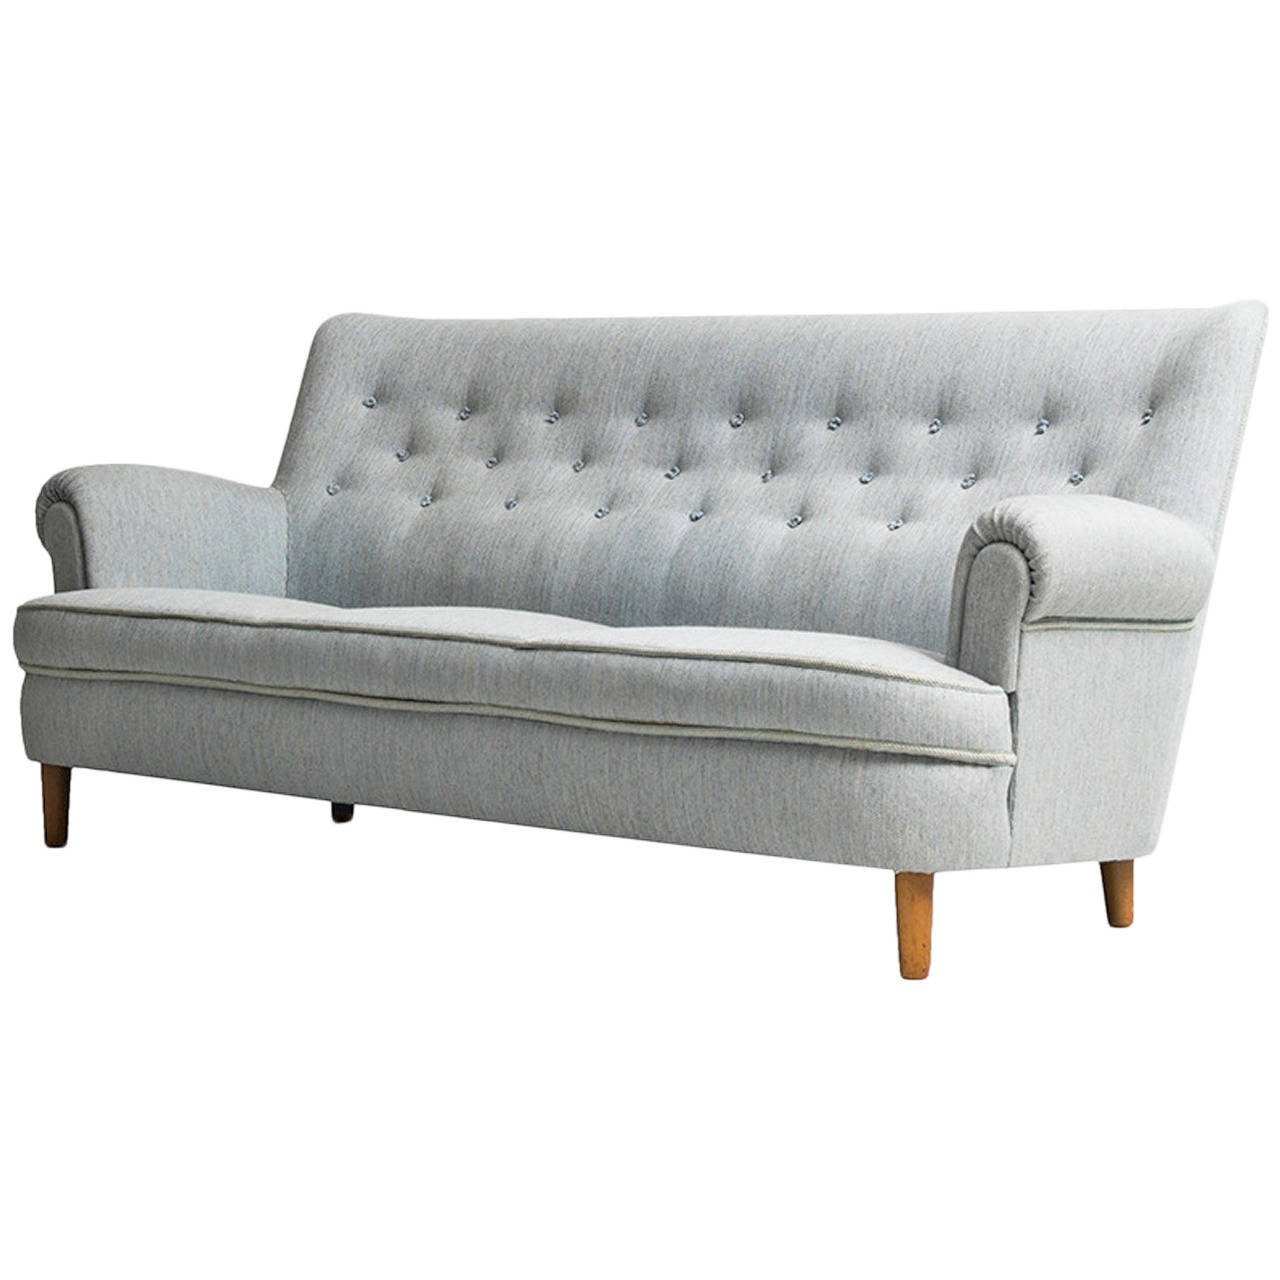 Carl malmsten hemmakv ll sofa by o h sj gren in sweden for sale at 1stdibs Carl malmsten sofa